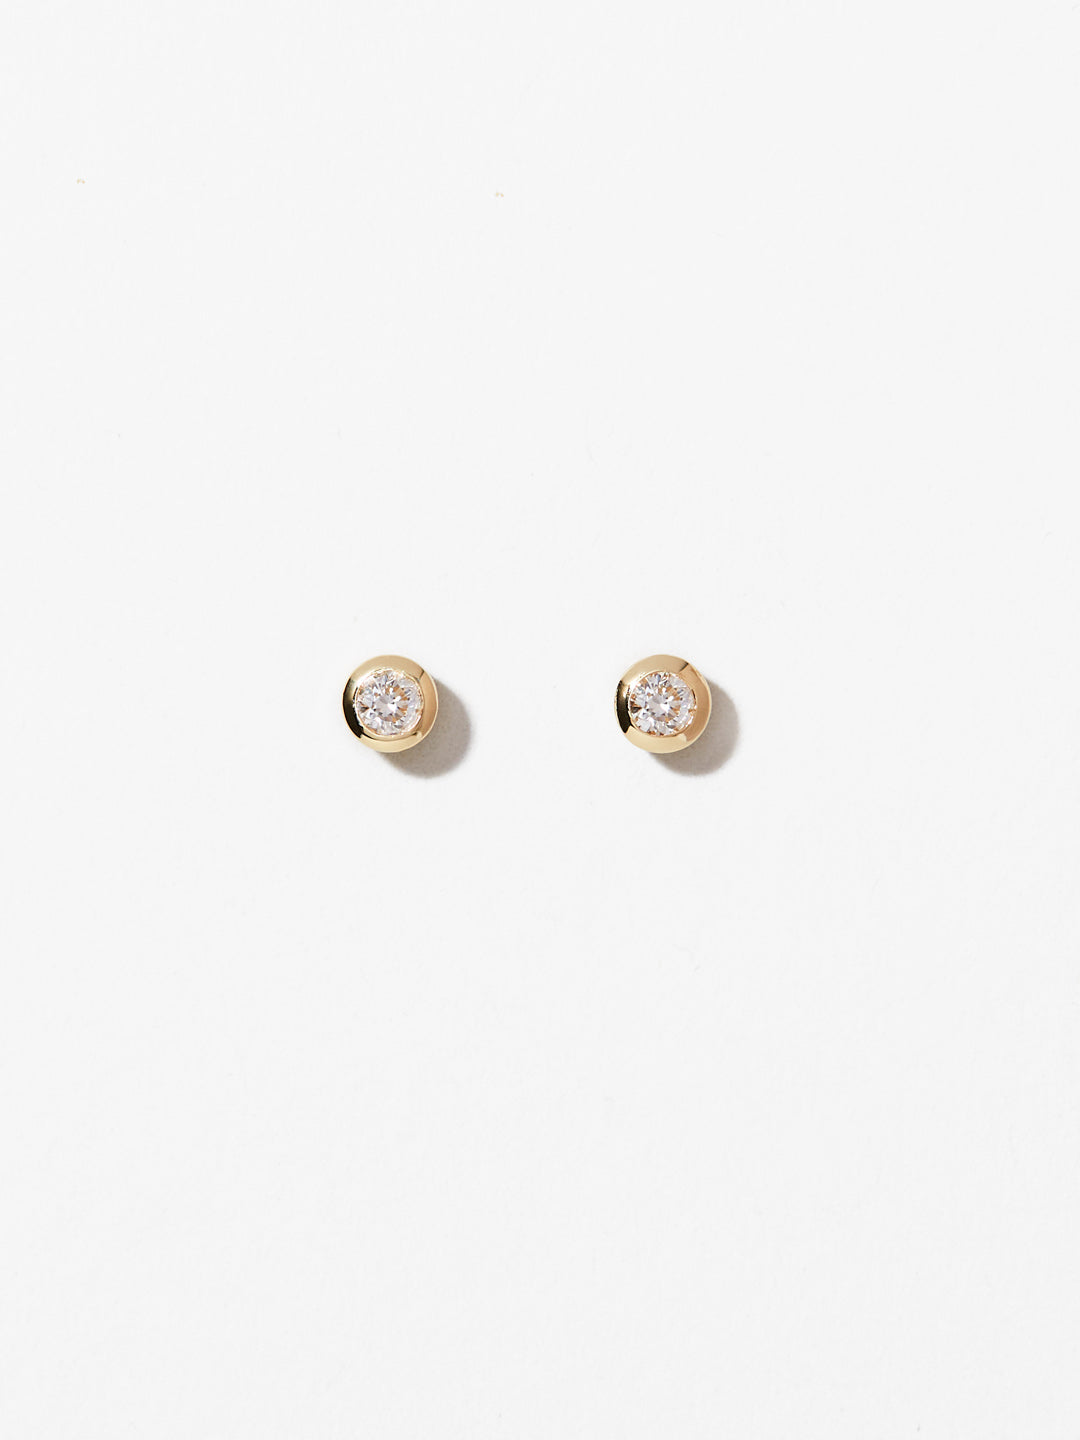 Ana Luisa Earrings Studs Delicate Earrings Diamond Jewelry Diamond Stud Earrings Gold